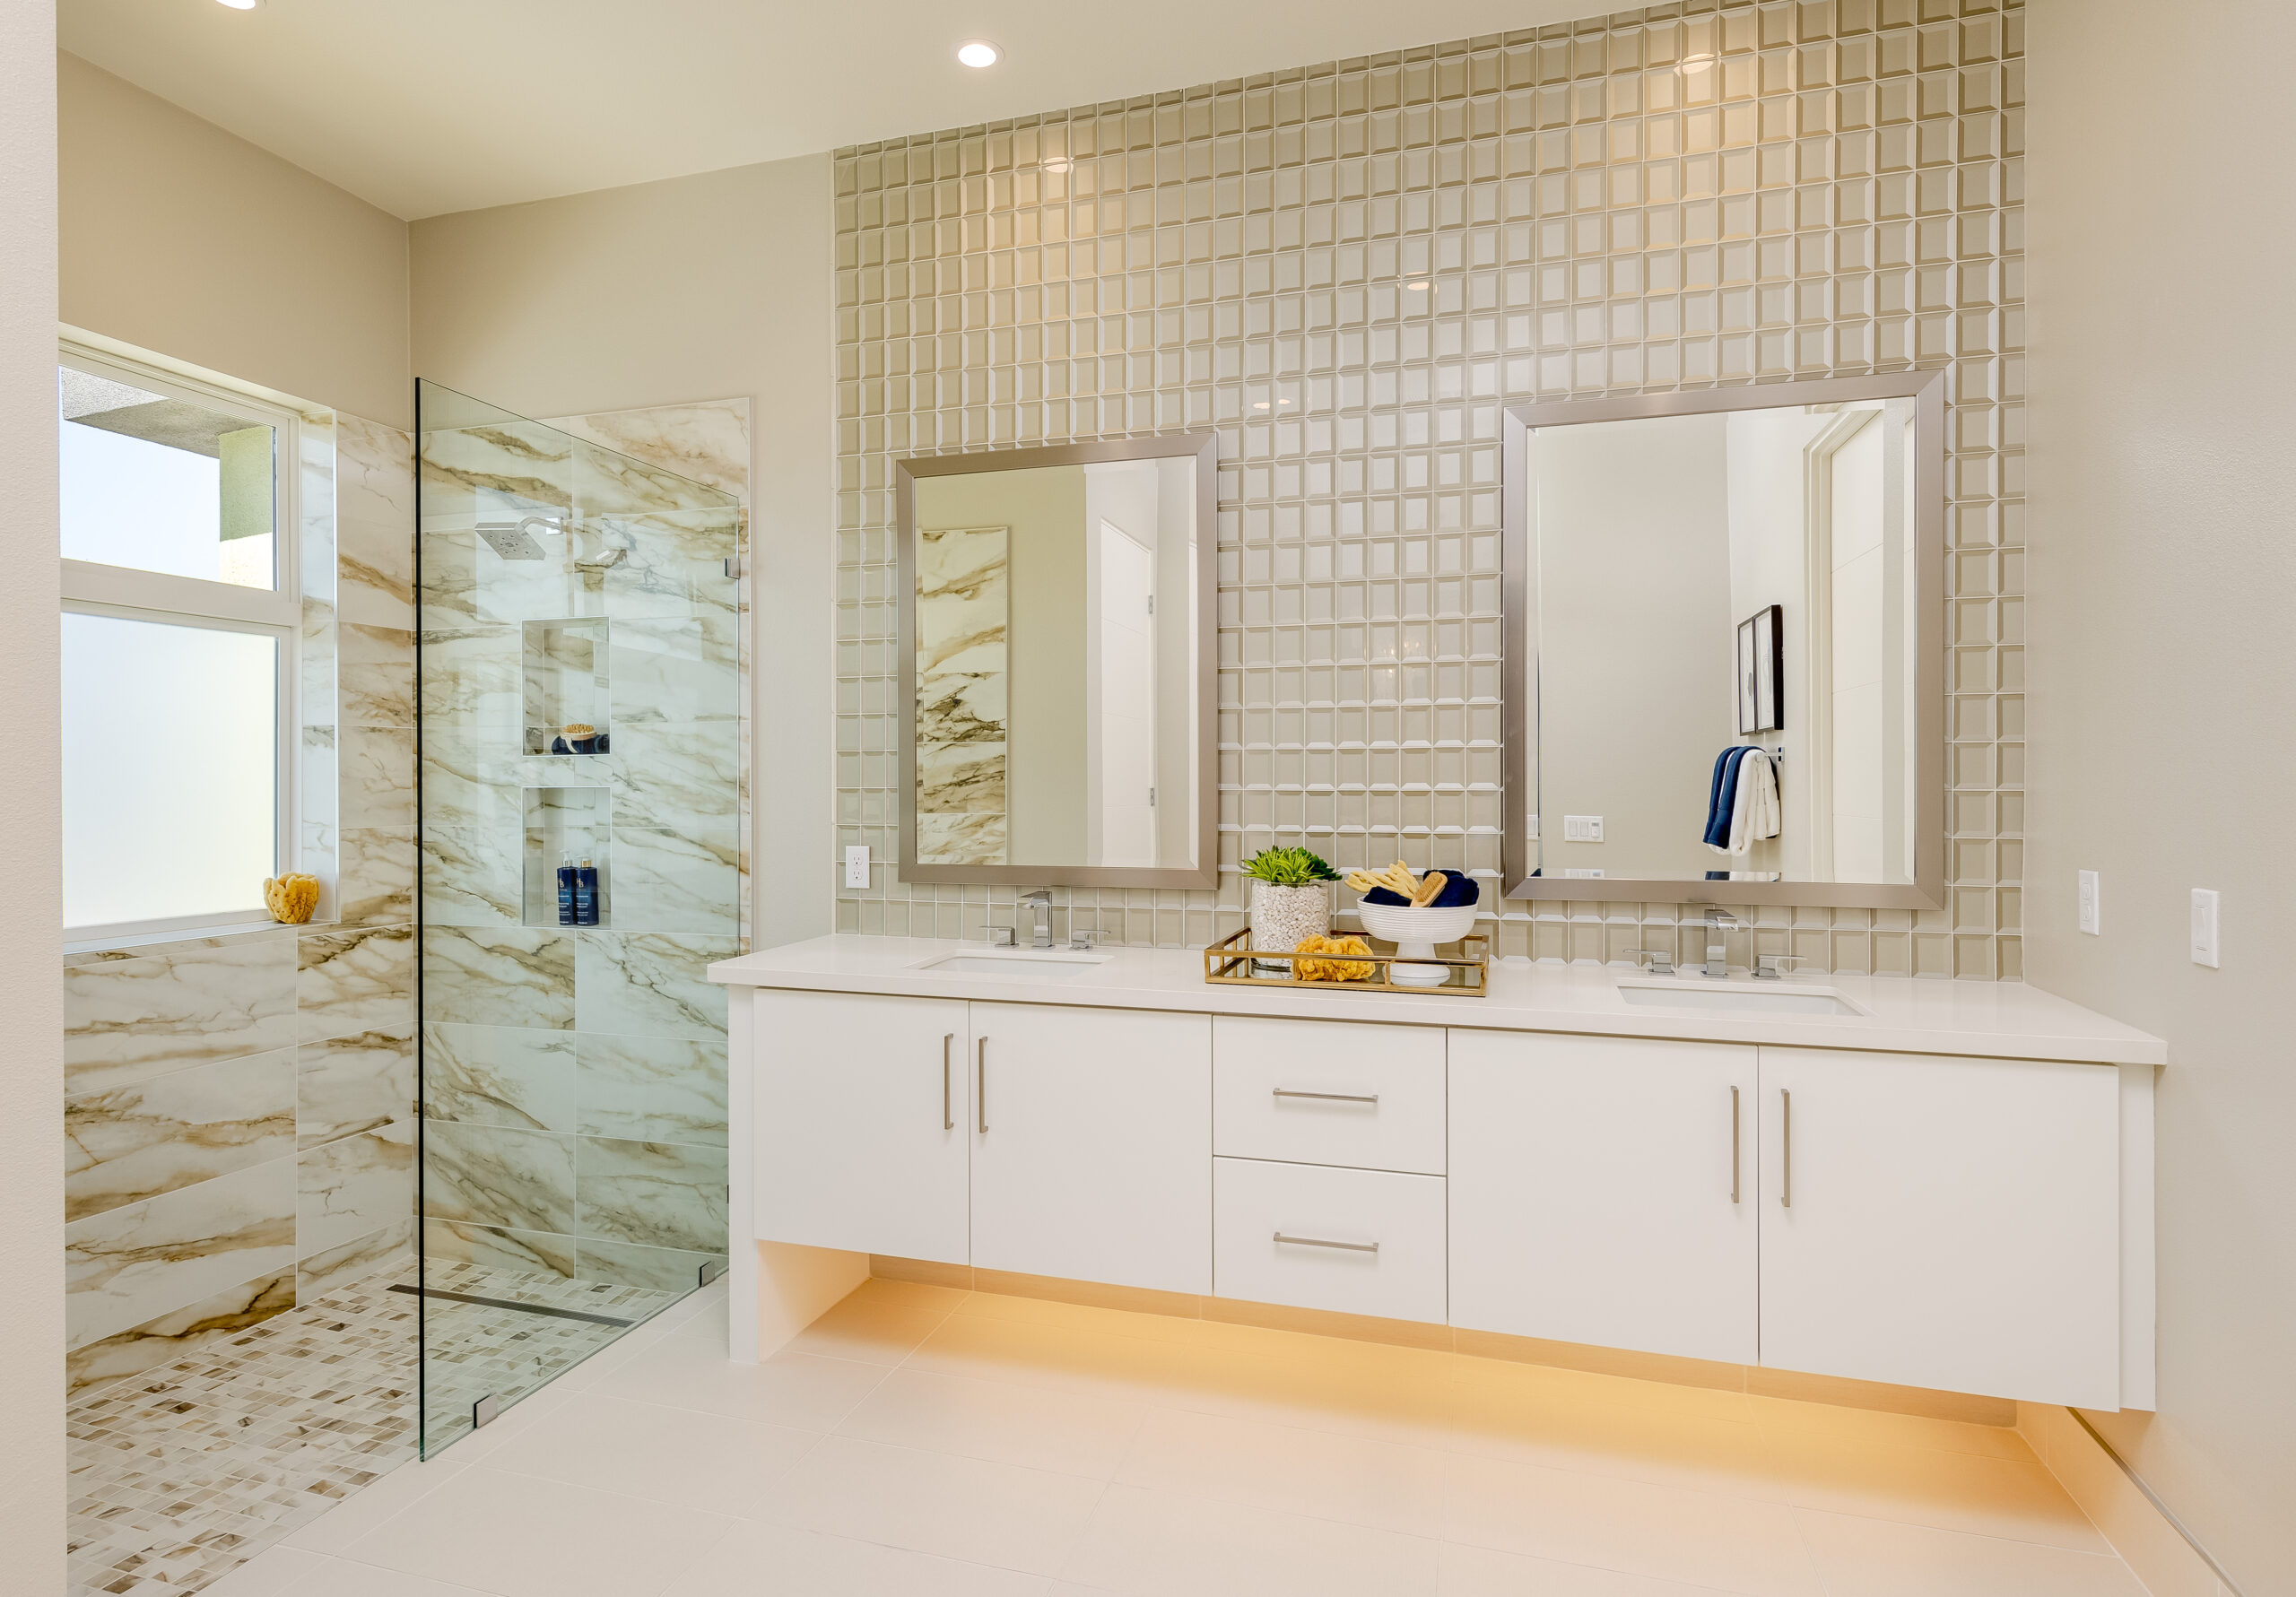 Residence 2: Primary bathroom with walk-in shower and dual vanity